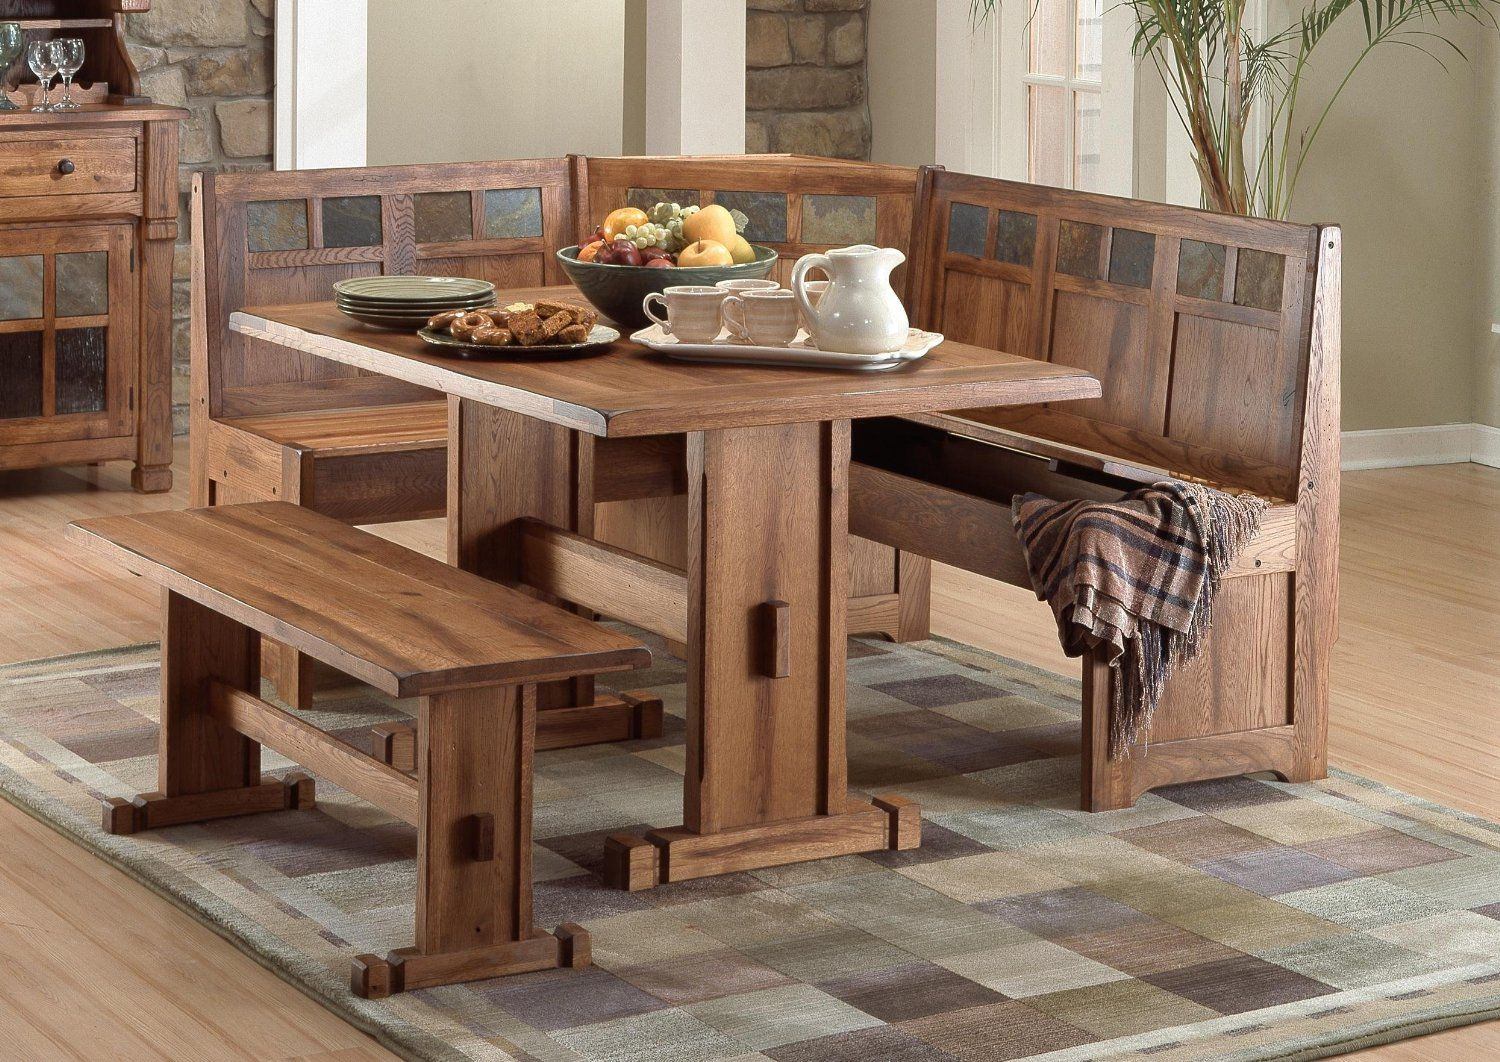 Riveting Kitchen Tables With Storage And Benches Cup Chair